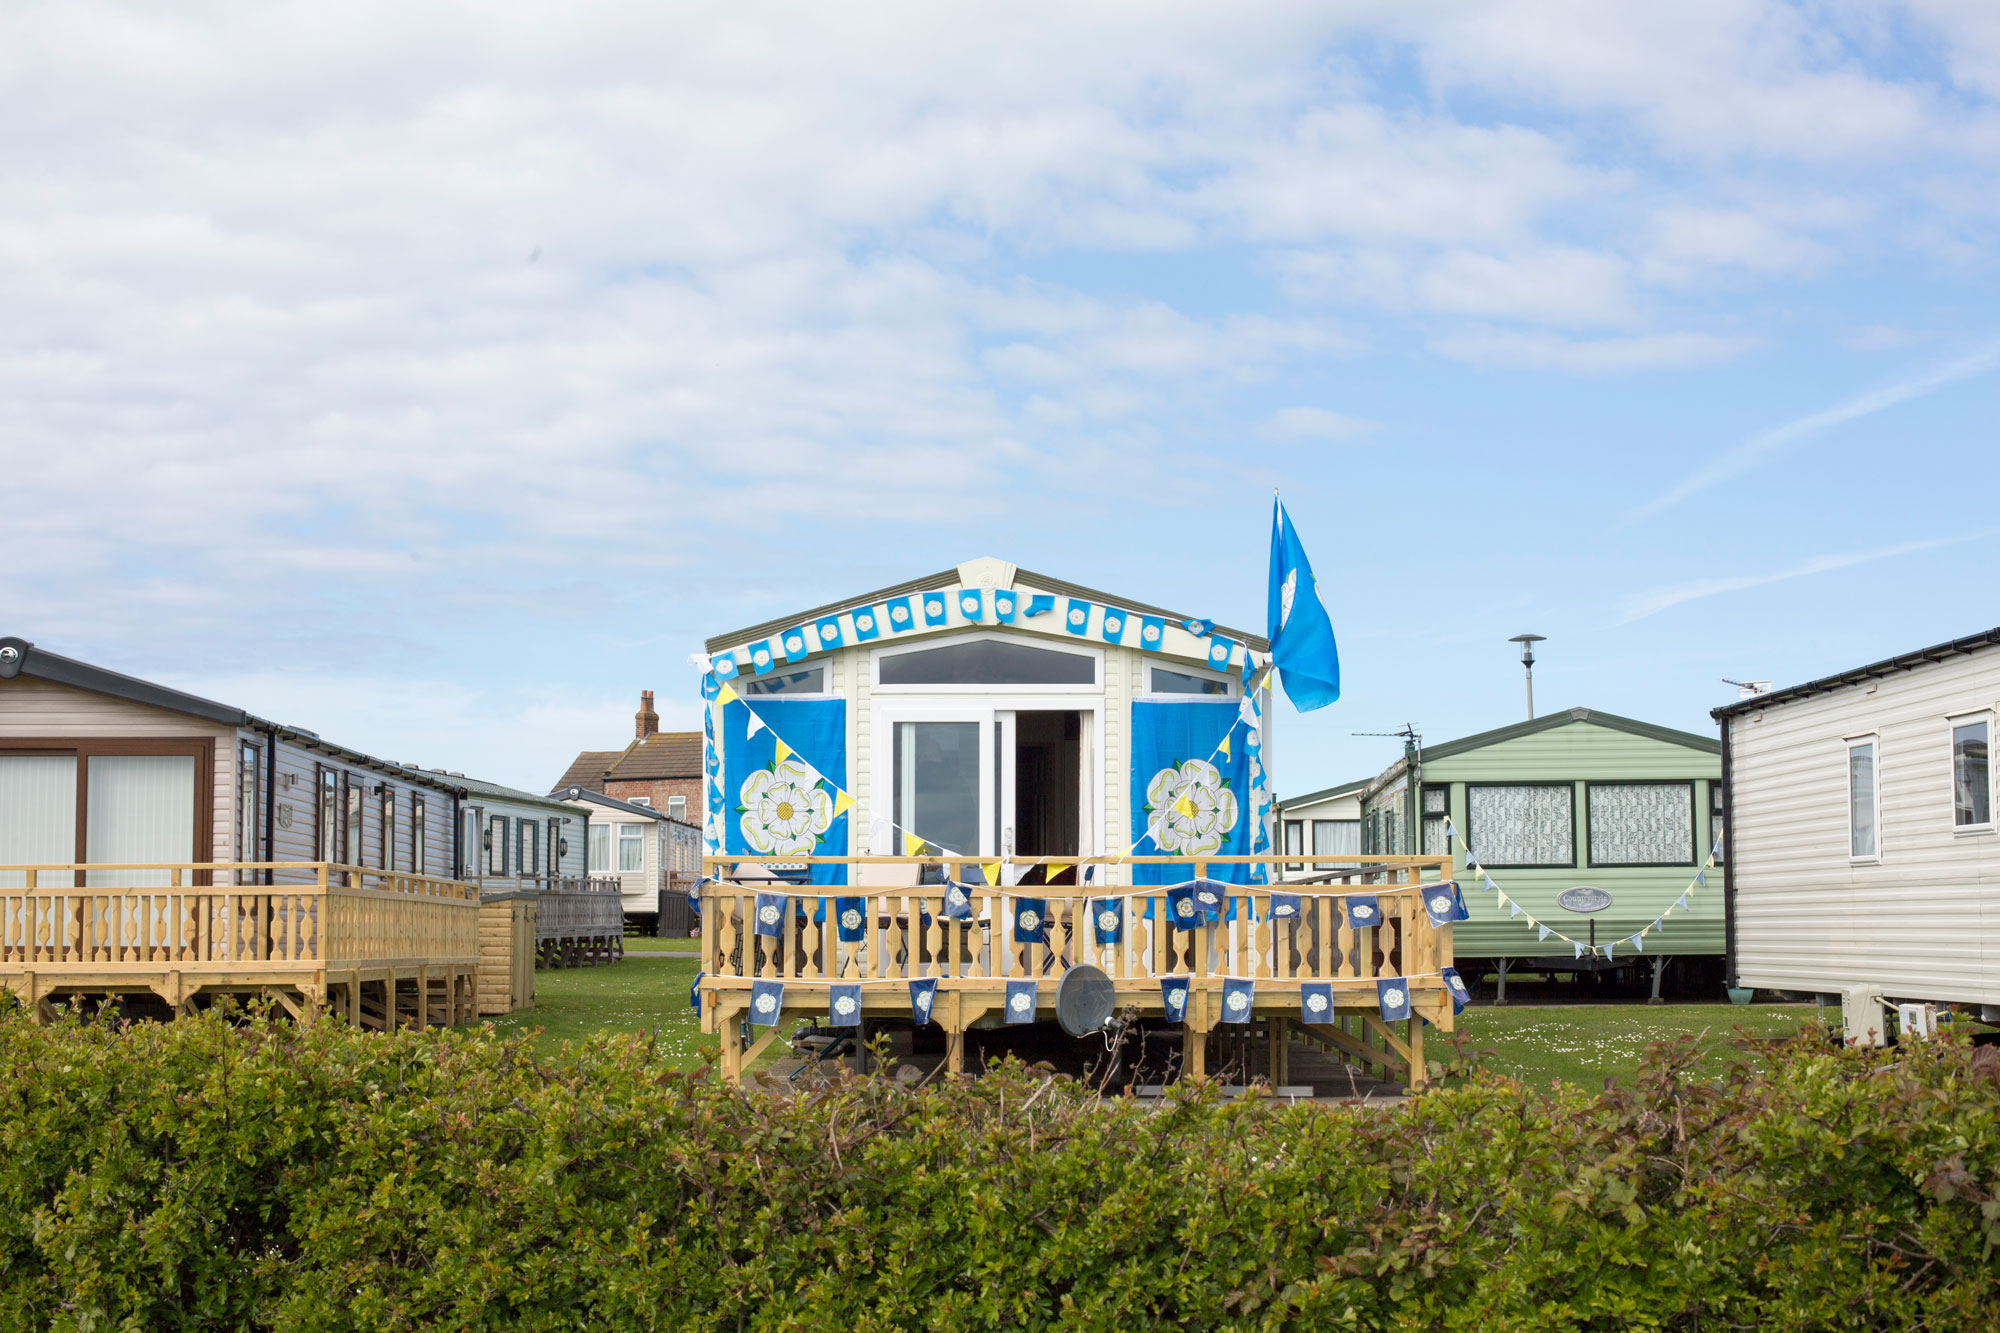 Tour De Yorks bedecked static caravan.